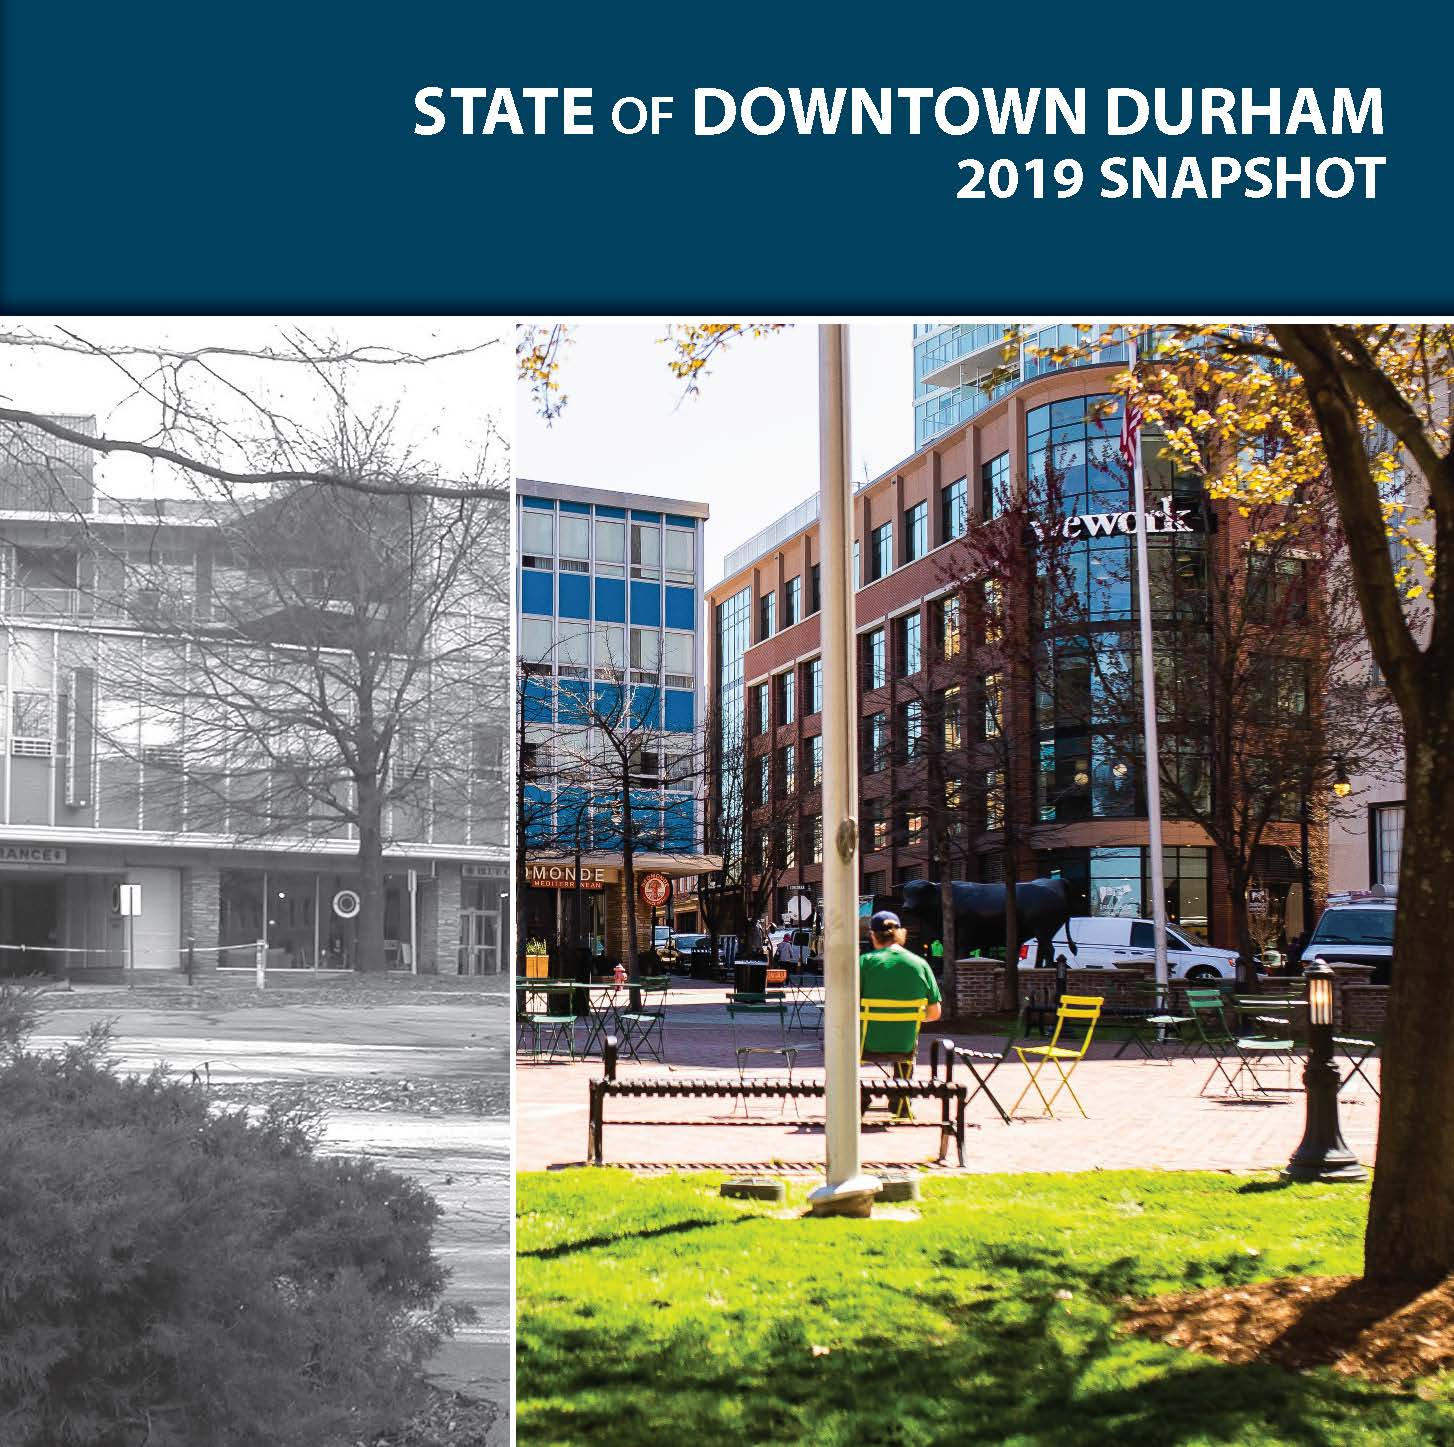 State of Downtown Durham 2019 report thumbnail image